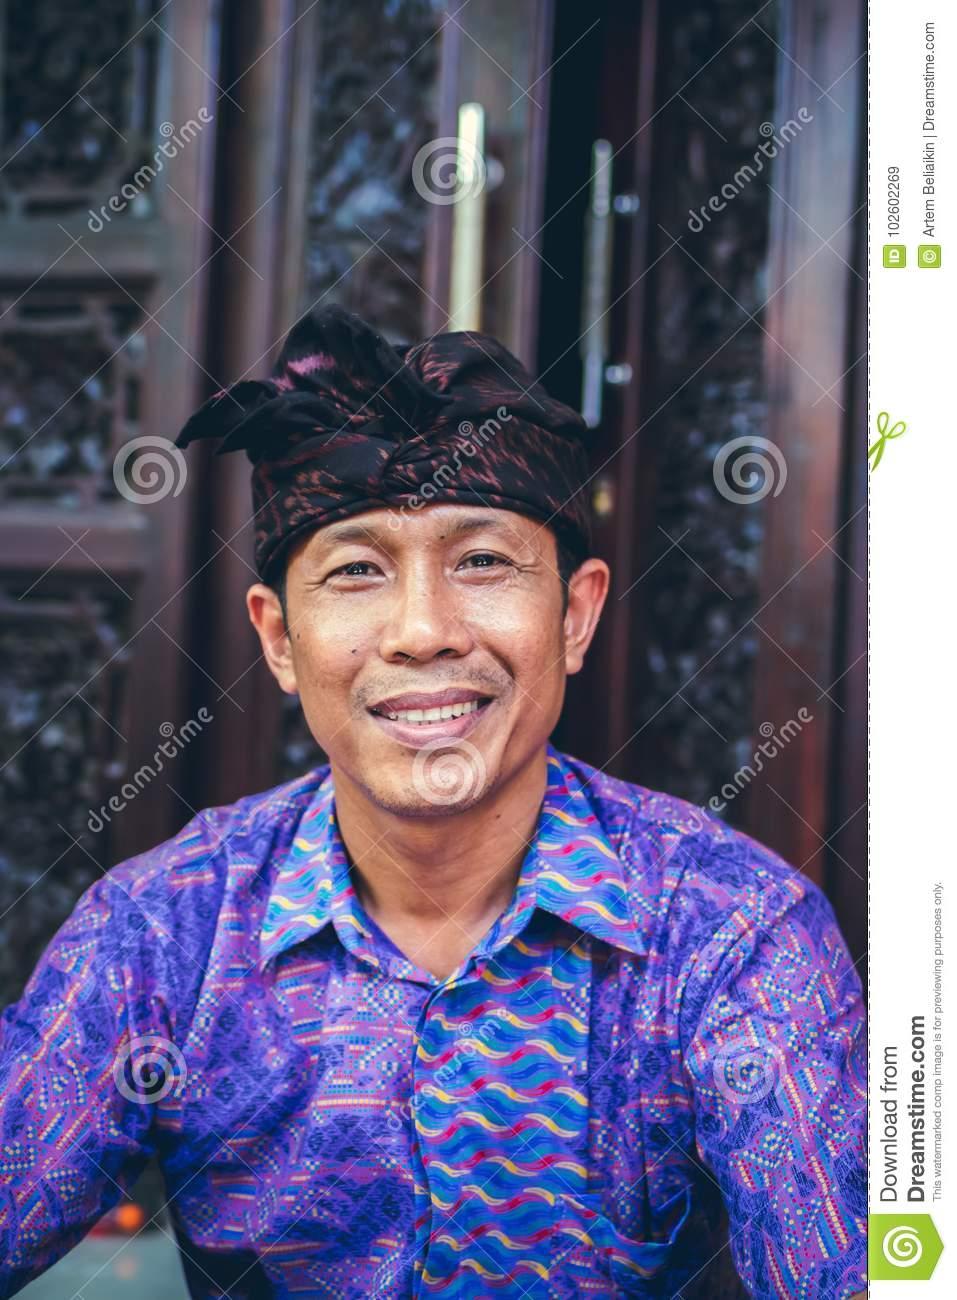 BALI, INDONESIA - OCTOBER 23, 2017: Close up portrait of balinese man. Bali, Indonesia.